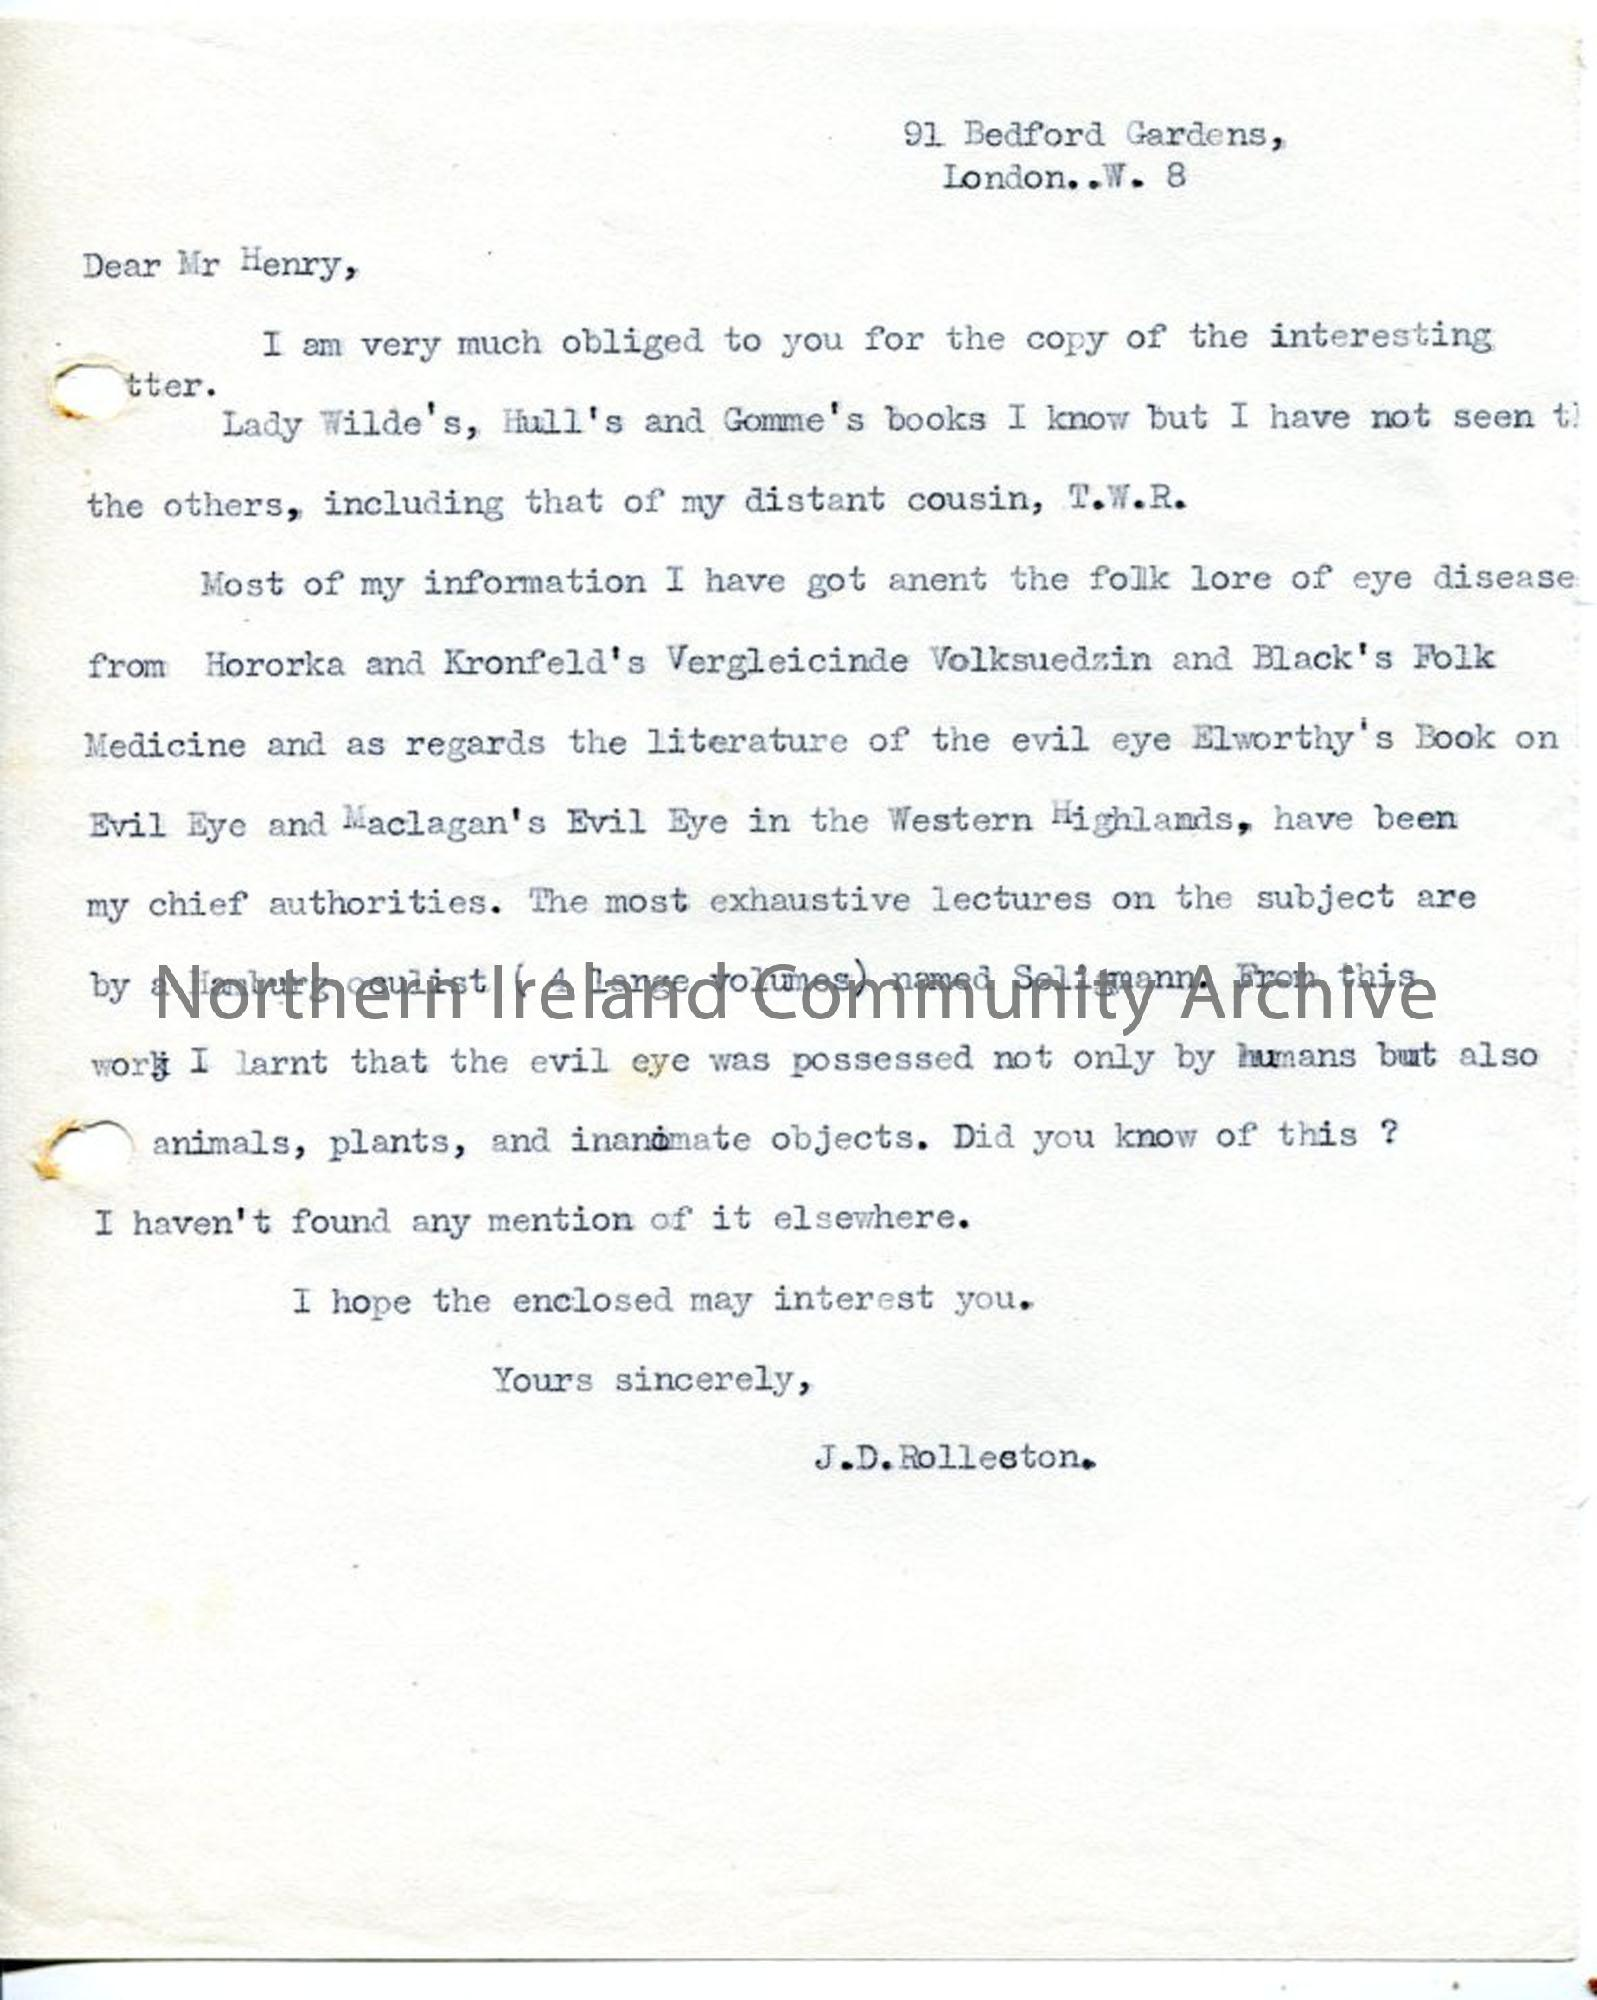 Typed letter from J.D Rolleston to Sam Henry